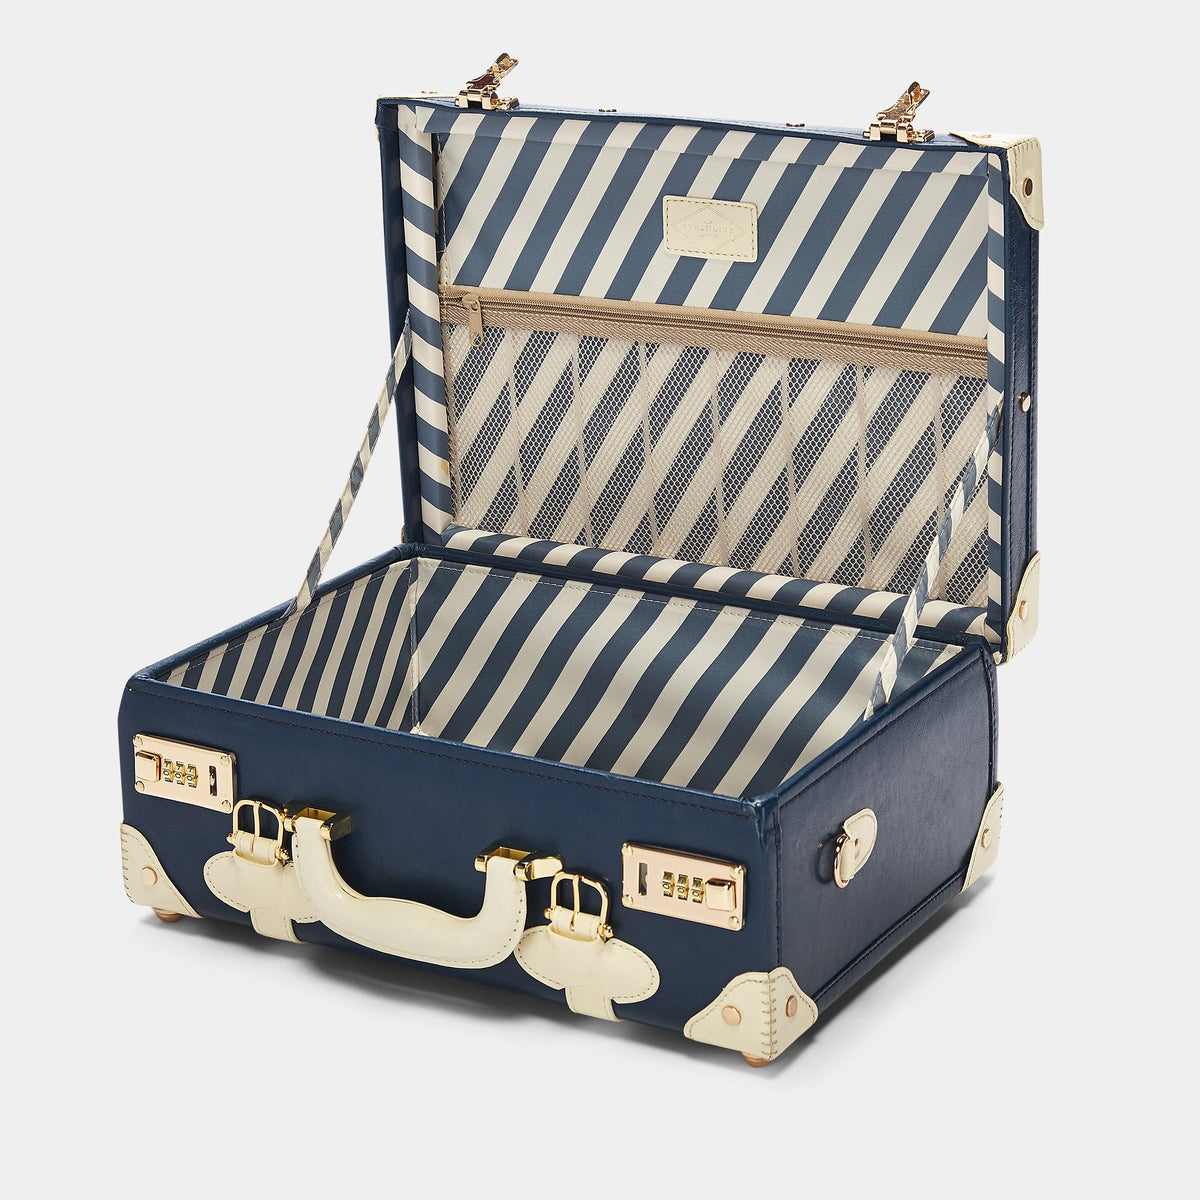 The Entrepreneur Overnighter in Navy - Vintage-Inspired Luggage - Interior Front